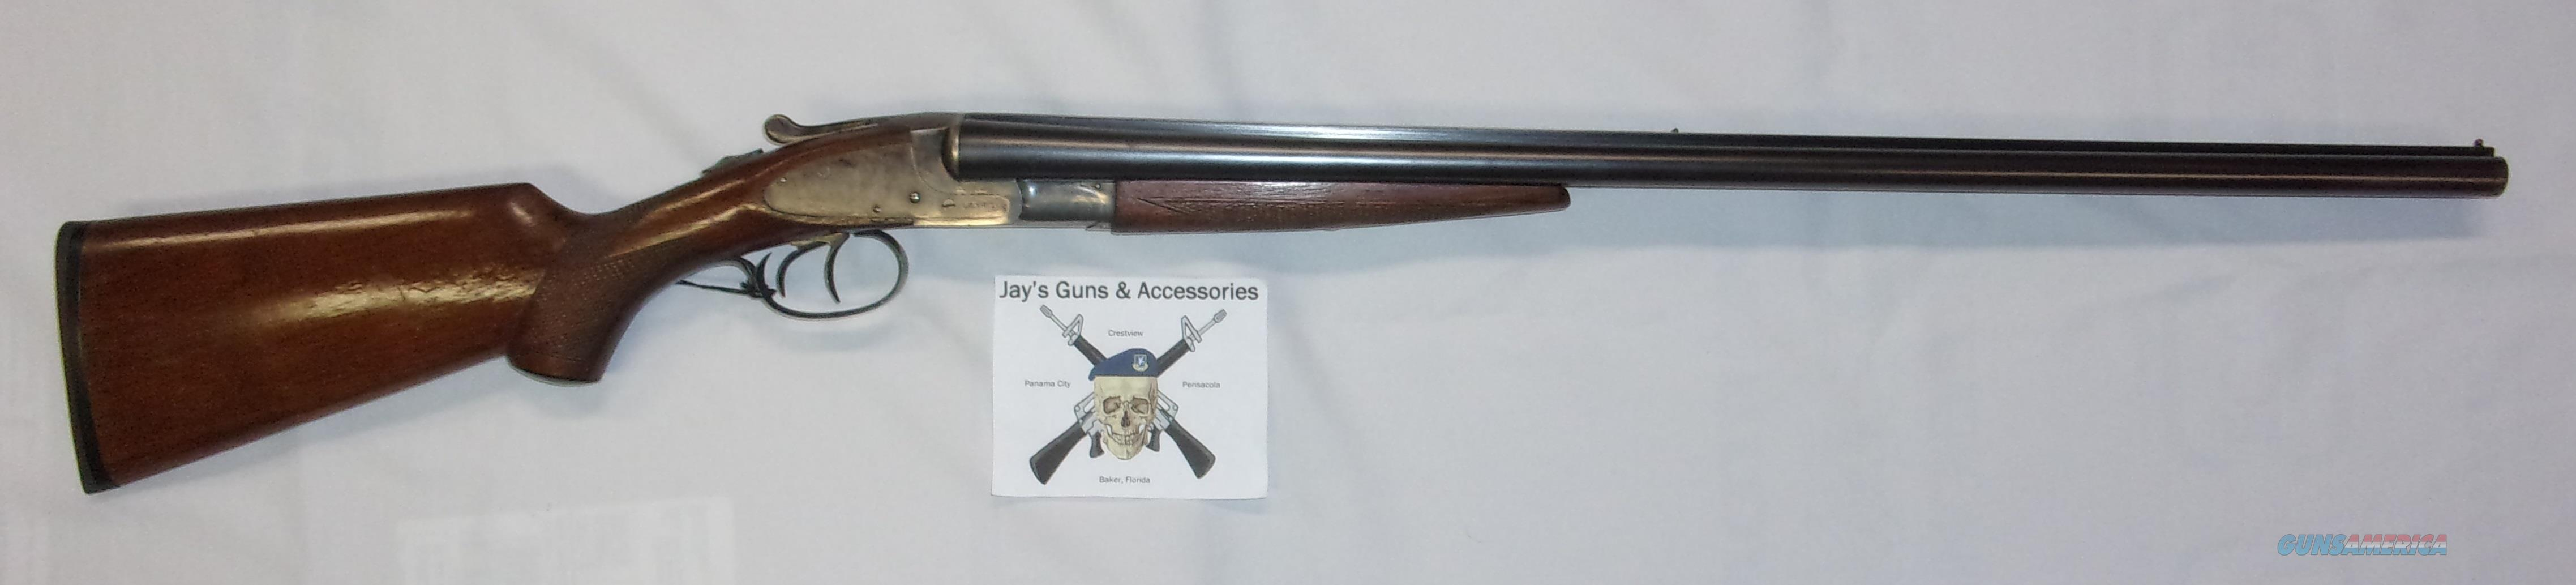 L.C. Smith Field Grade in 20 Gauge  Guns > Shotguns > L.C. Smith Shotguns